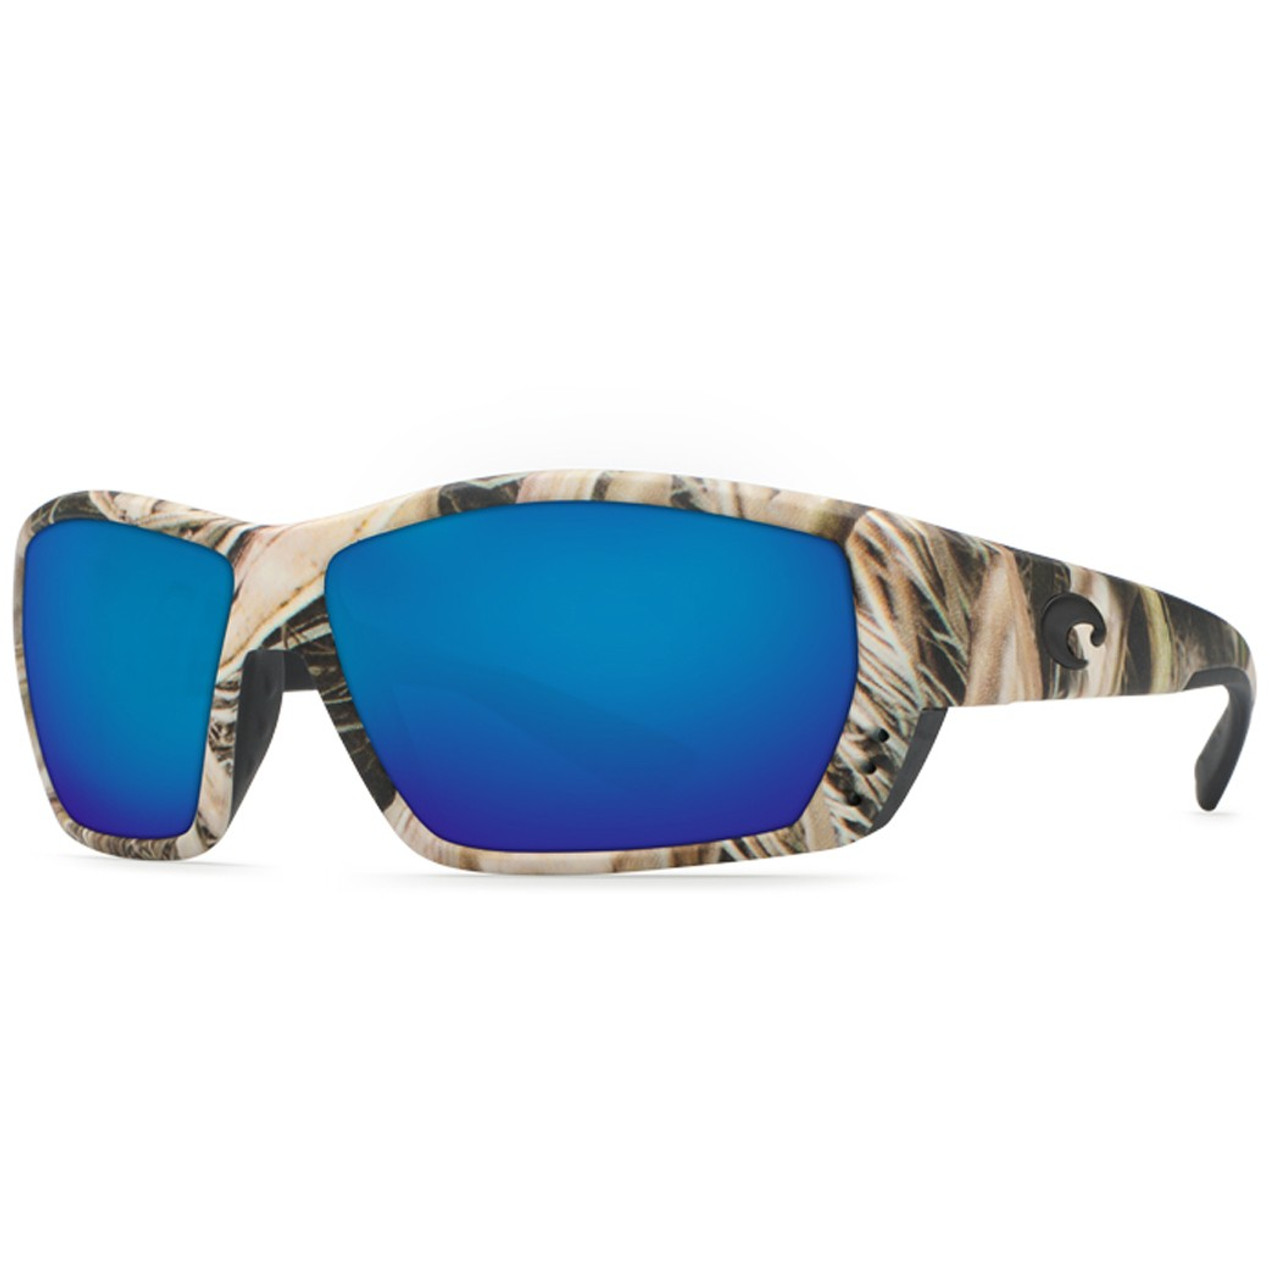 91244ed7cd55c Costa Sunglasses - Tuna Alley - Mossy Oak Blue Mirror - Surf and Dirt